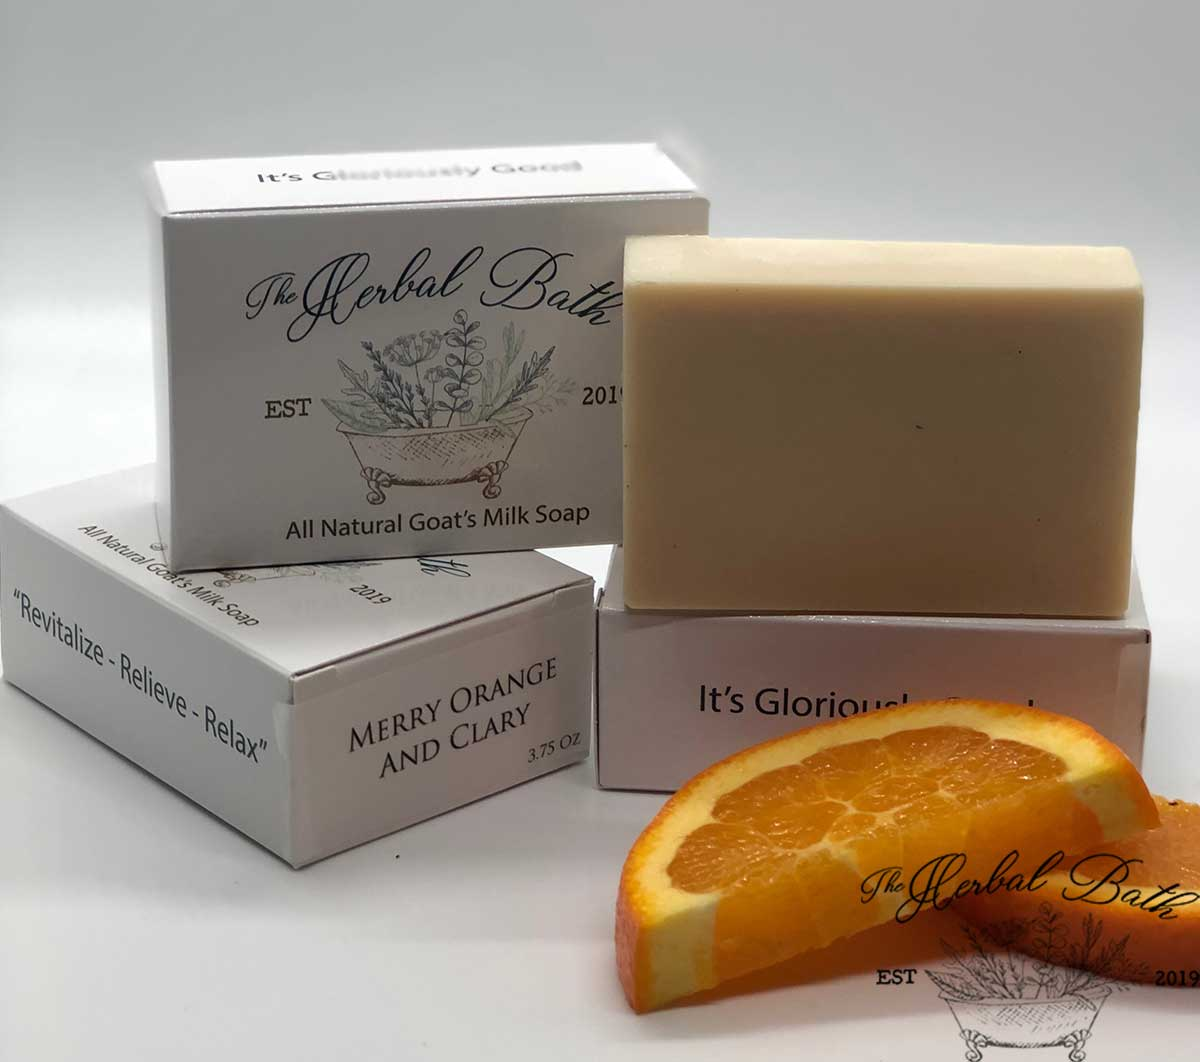 Merry Orange and Clary soap